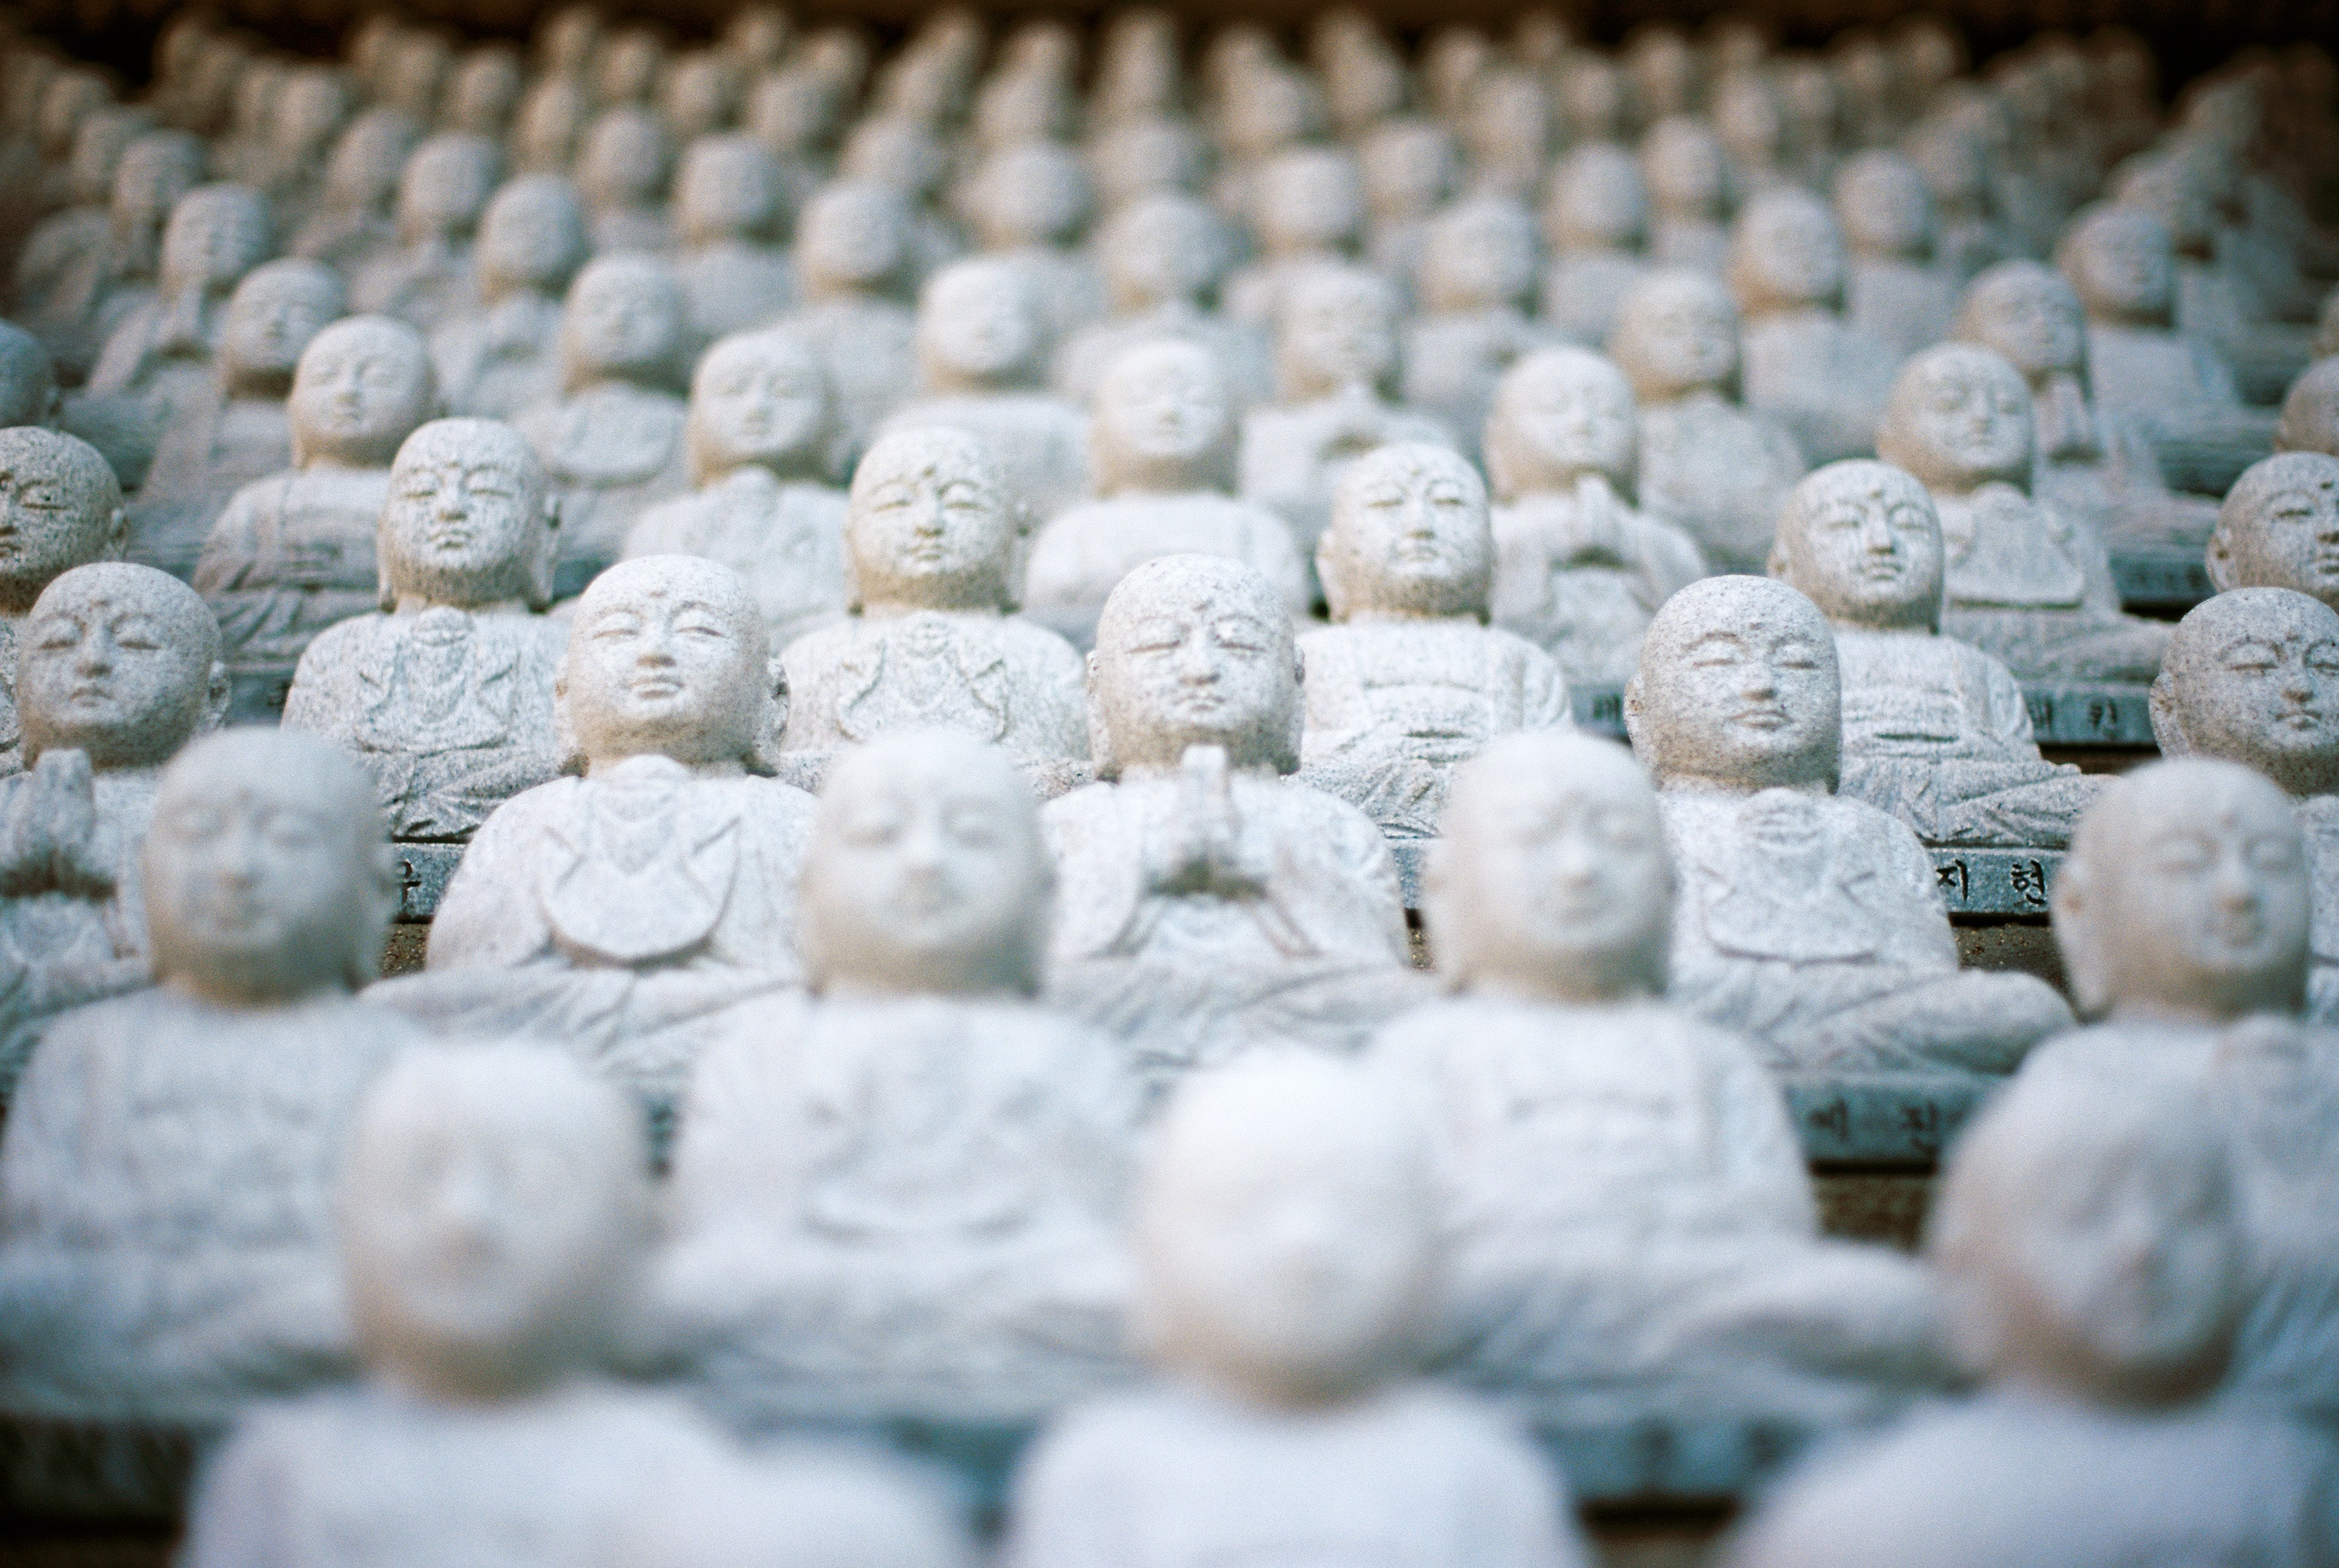 Rows of miniature stone Buddhist figurines